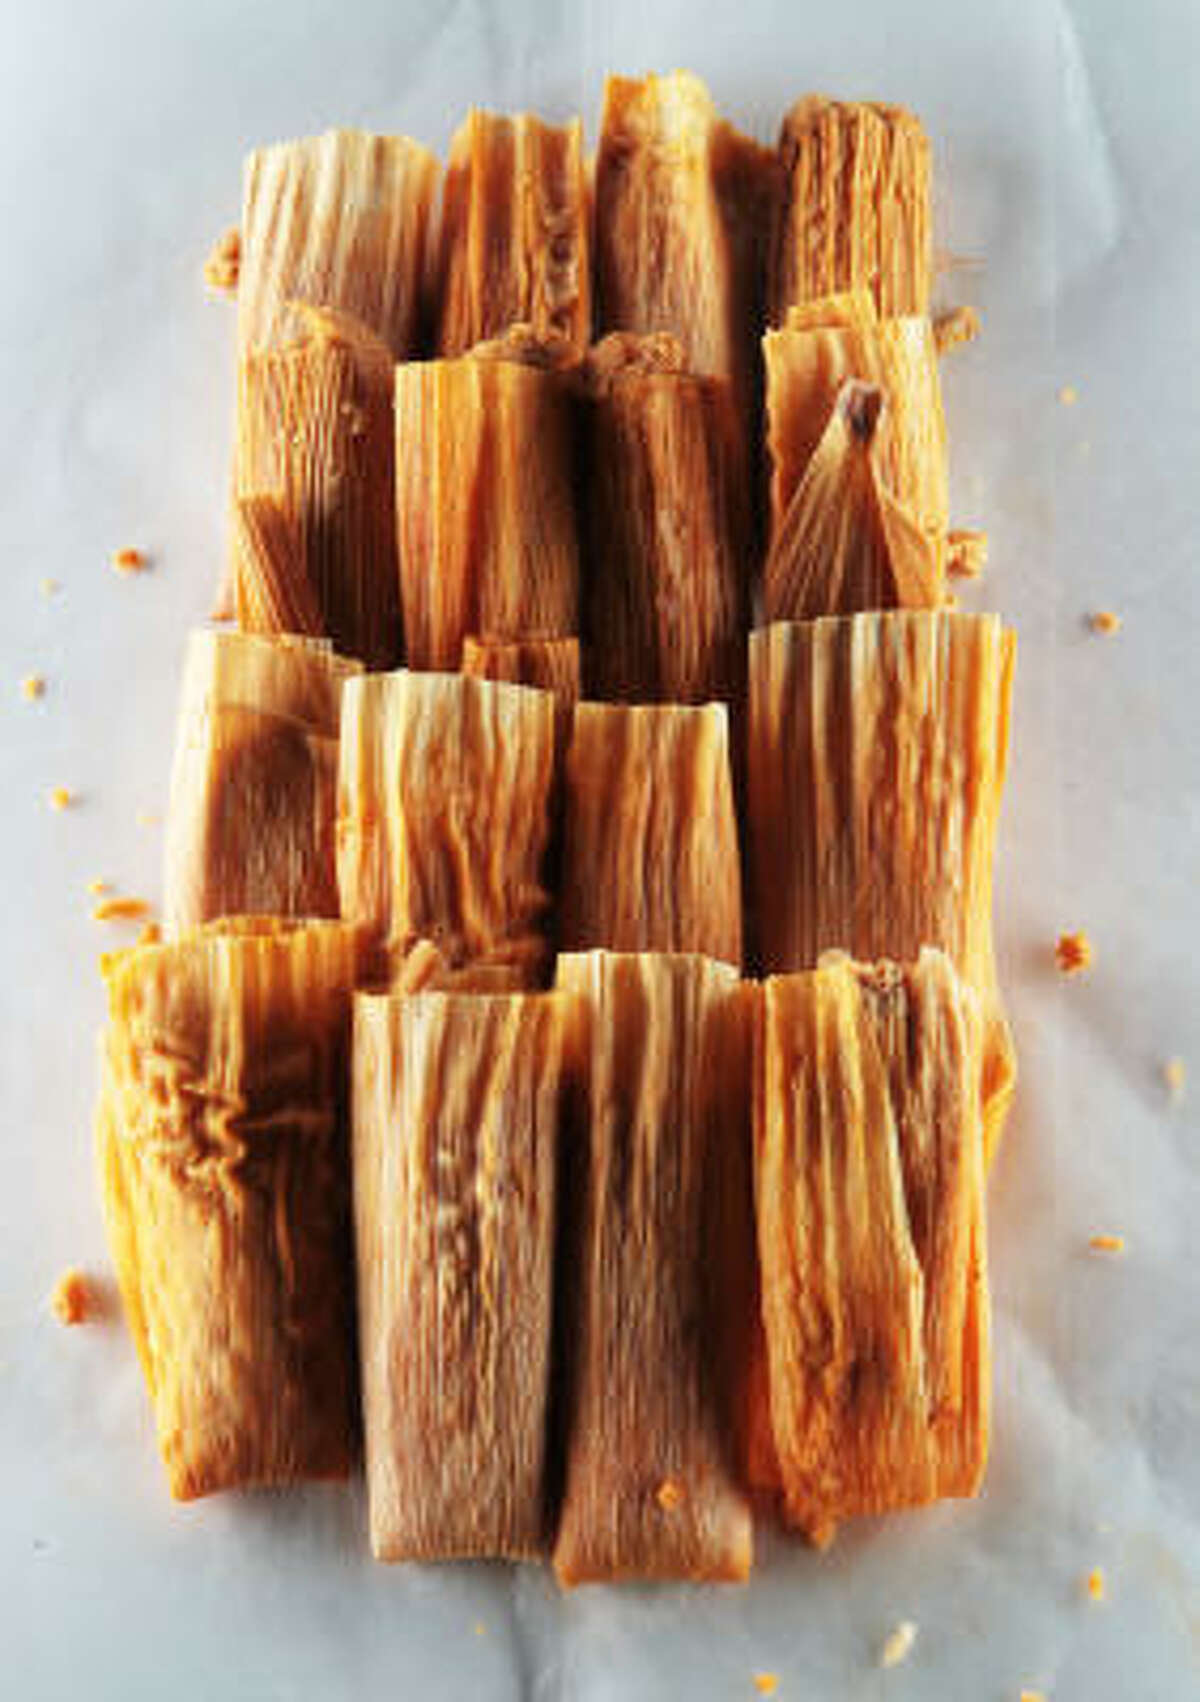 Tamales are a vital part of the Christmas holidays throughout Texas and the Southwest.